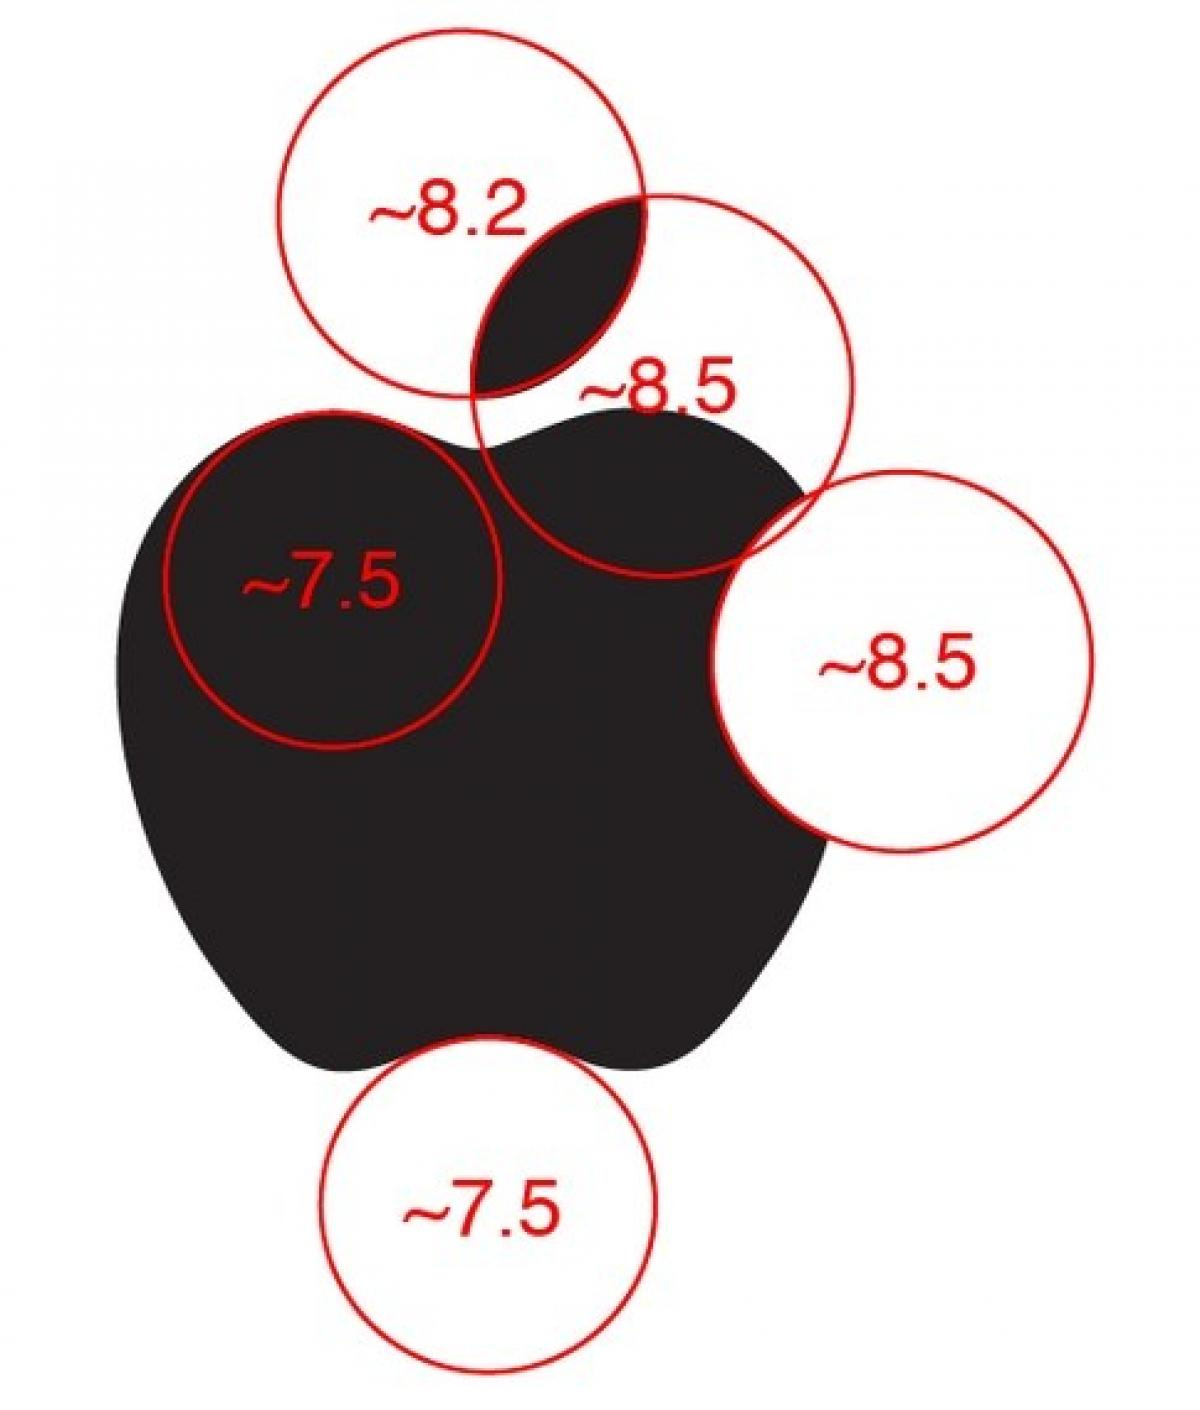 golden ratio - apple logo